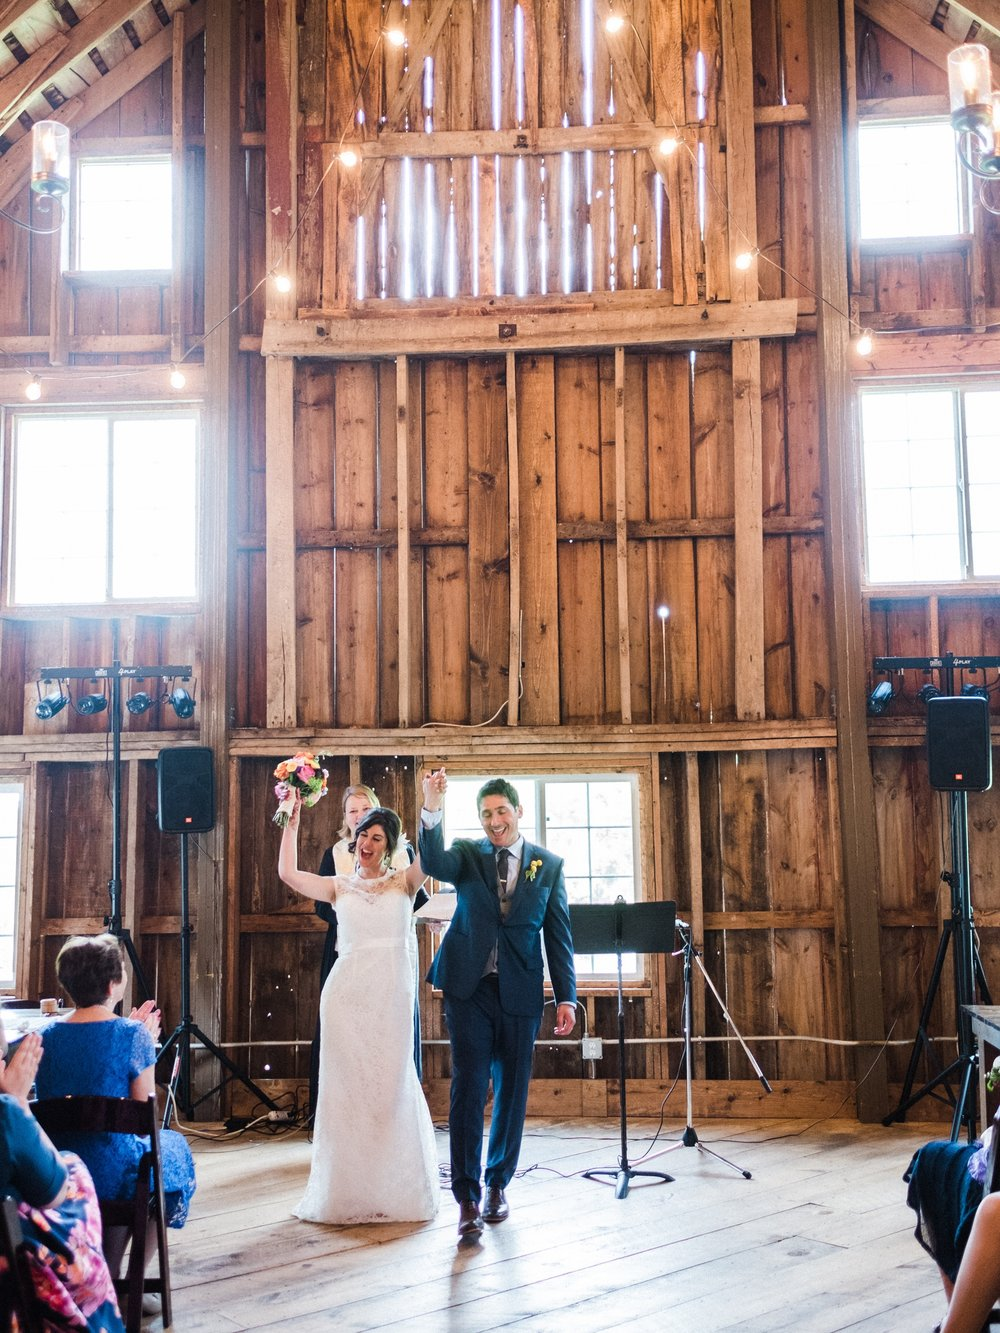 Minnesota Barn wedding photographer at Bloom Lake Barn in Shafer, MN